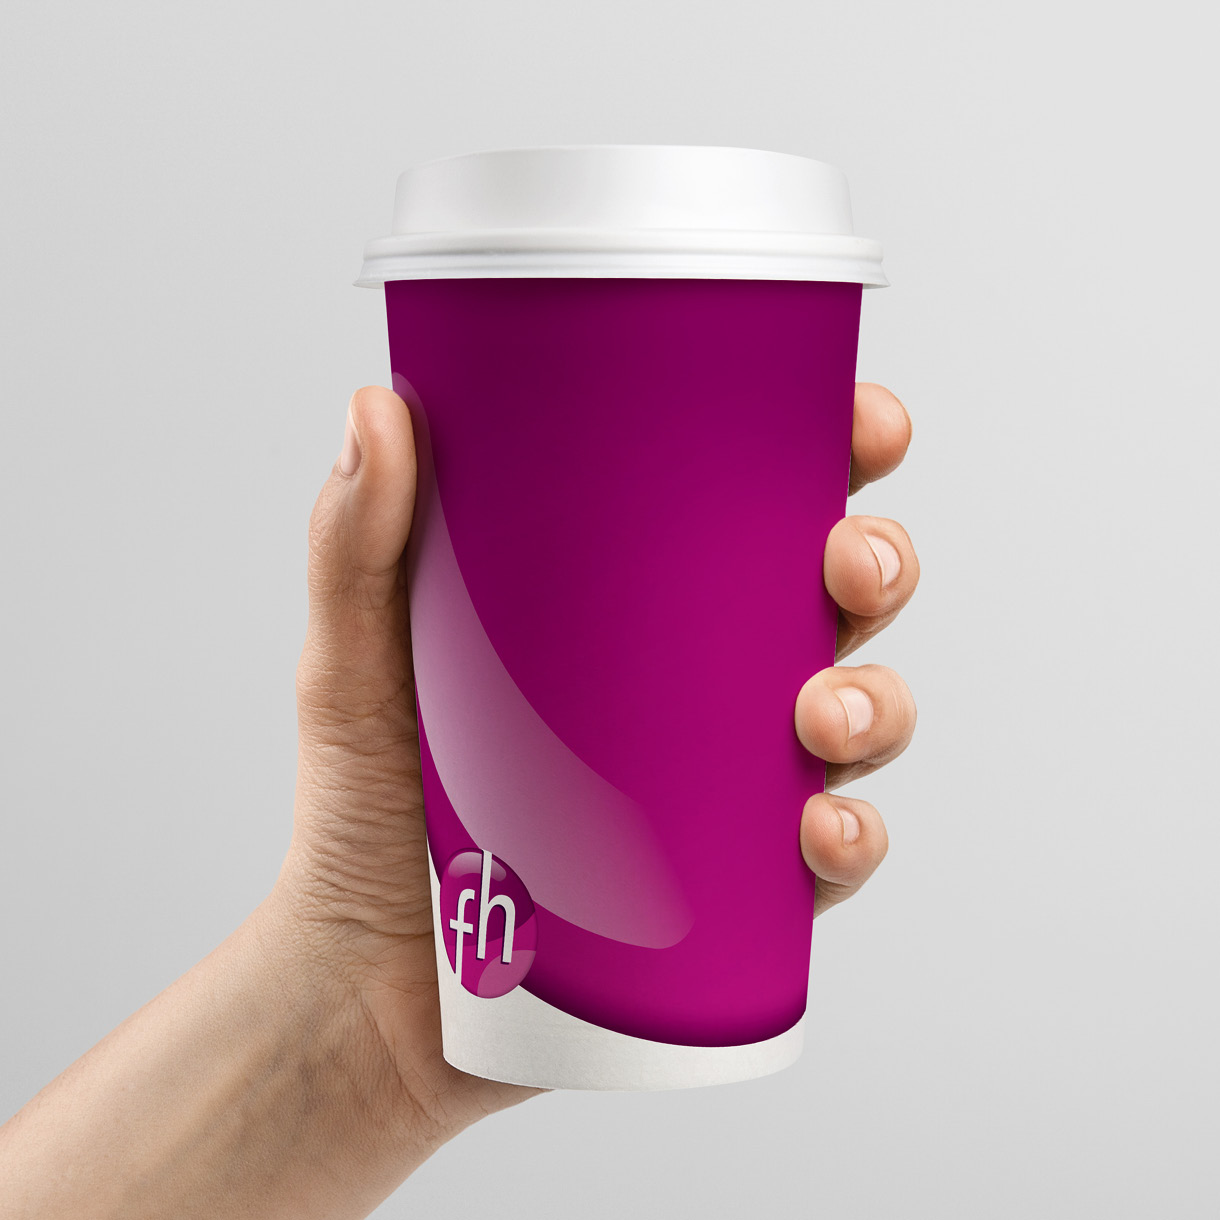 Focus Hotel - Coffee cup